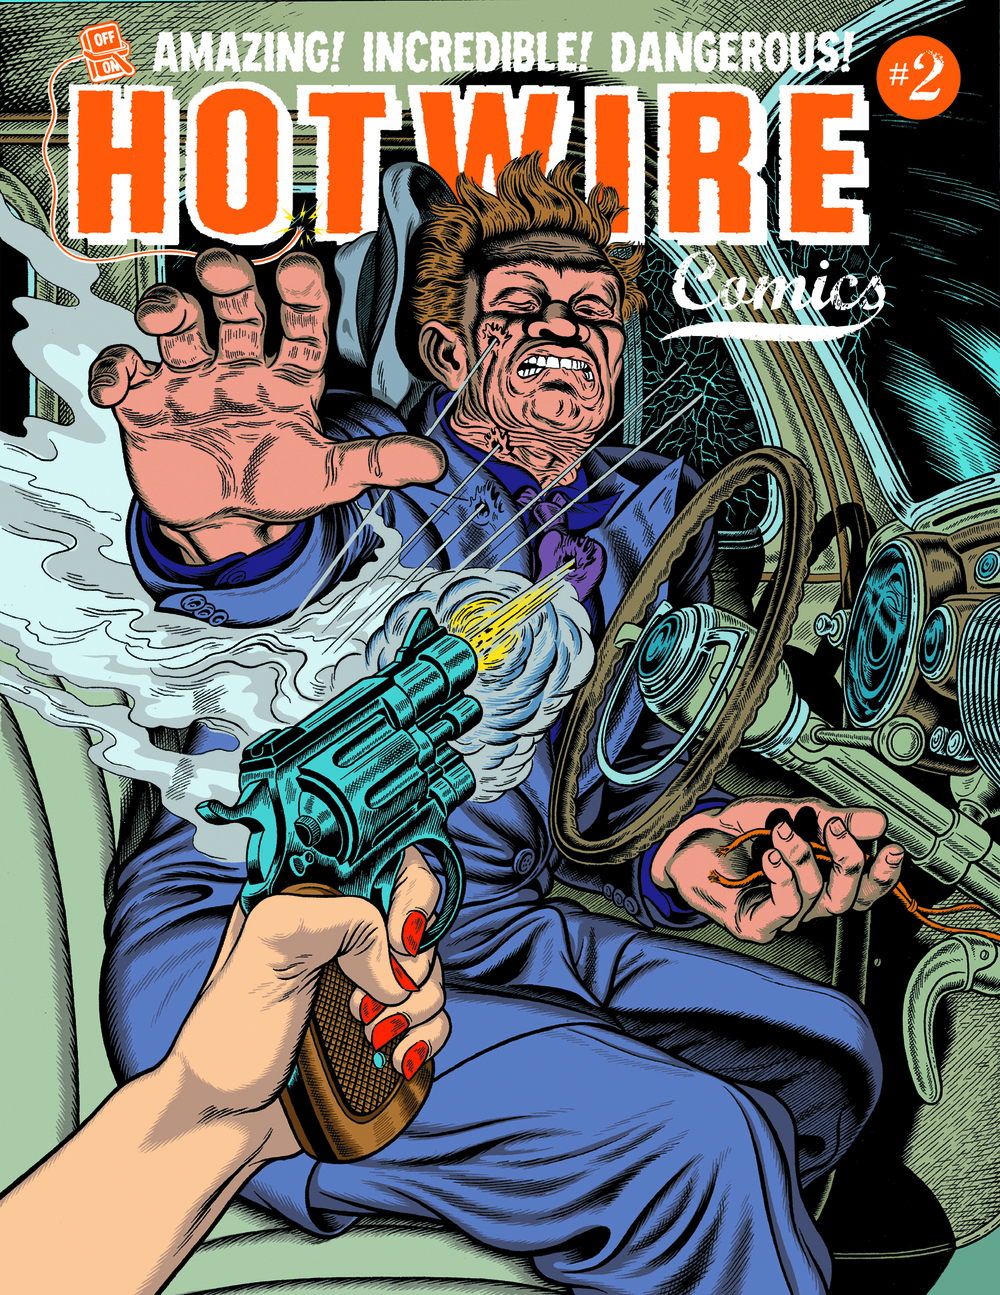 hotwire #2 cover.jpg